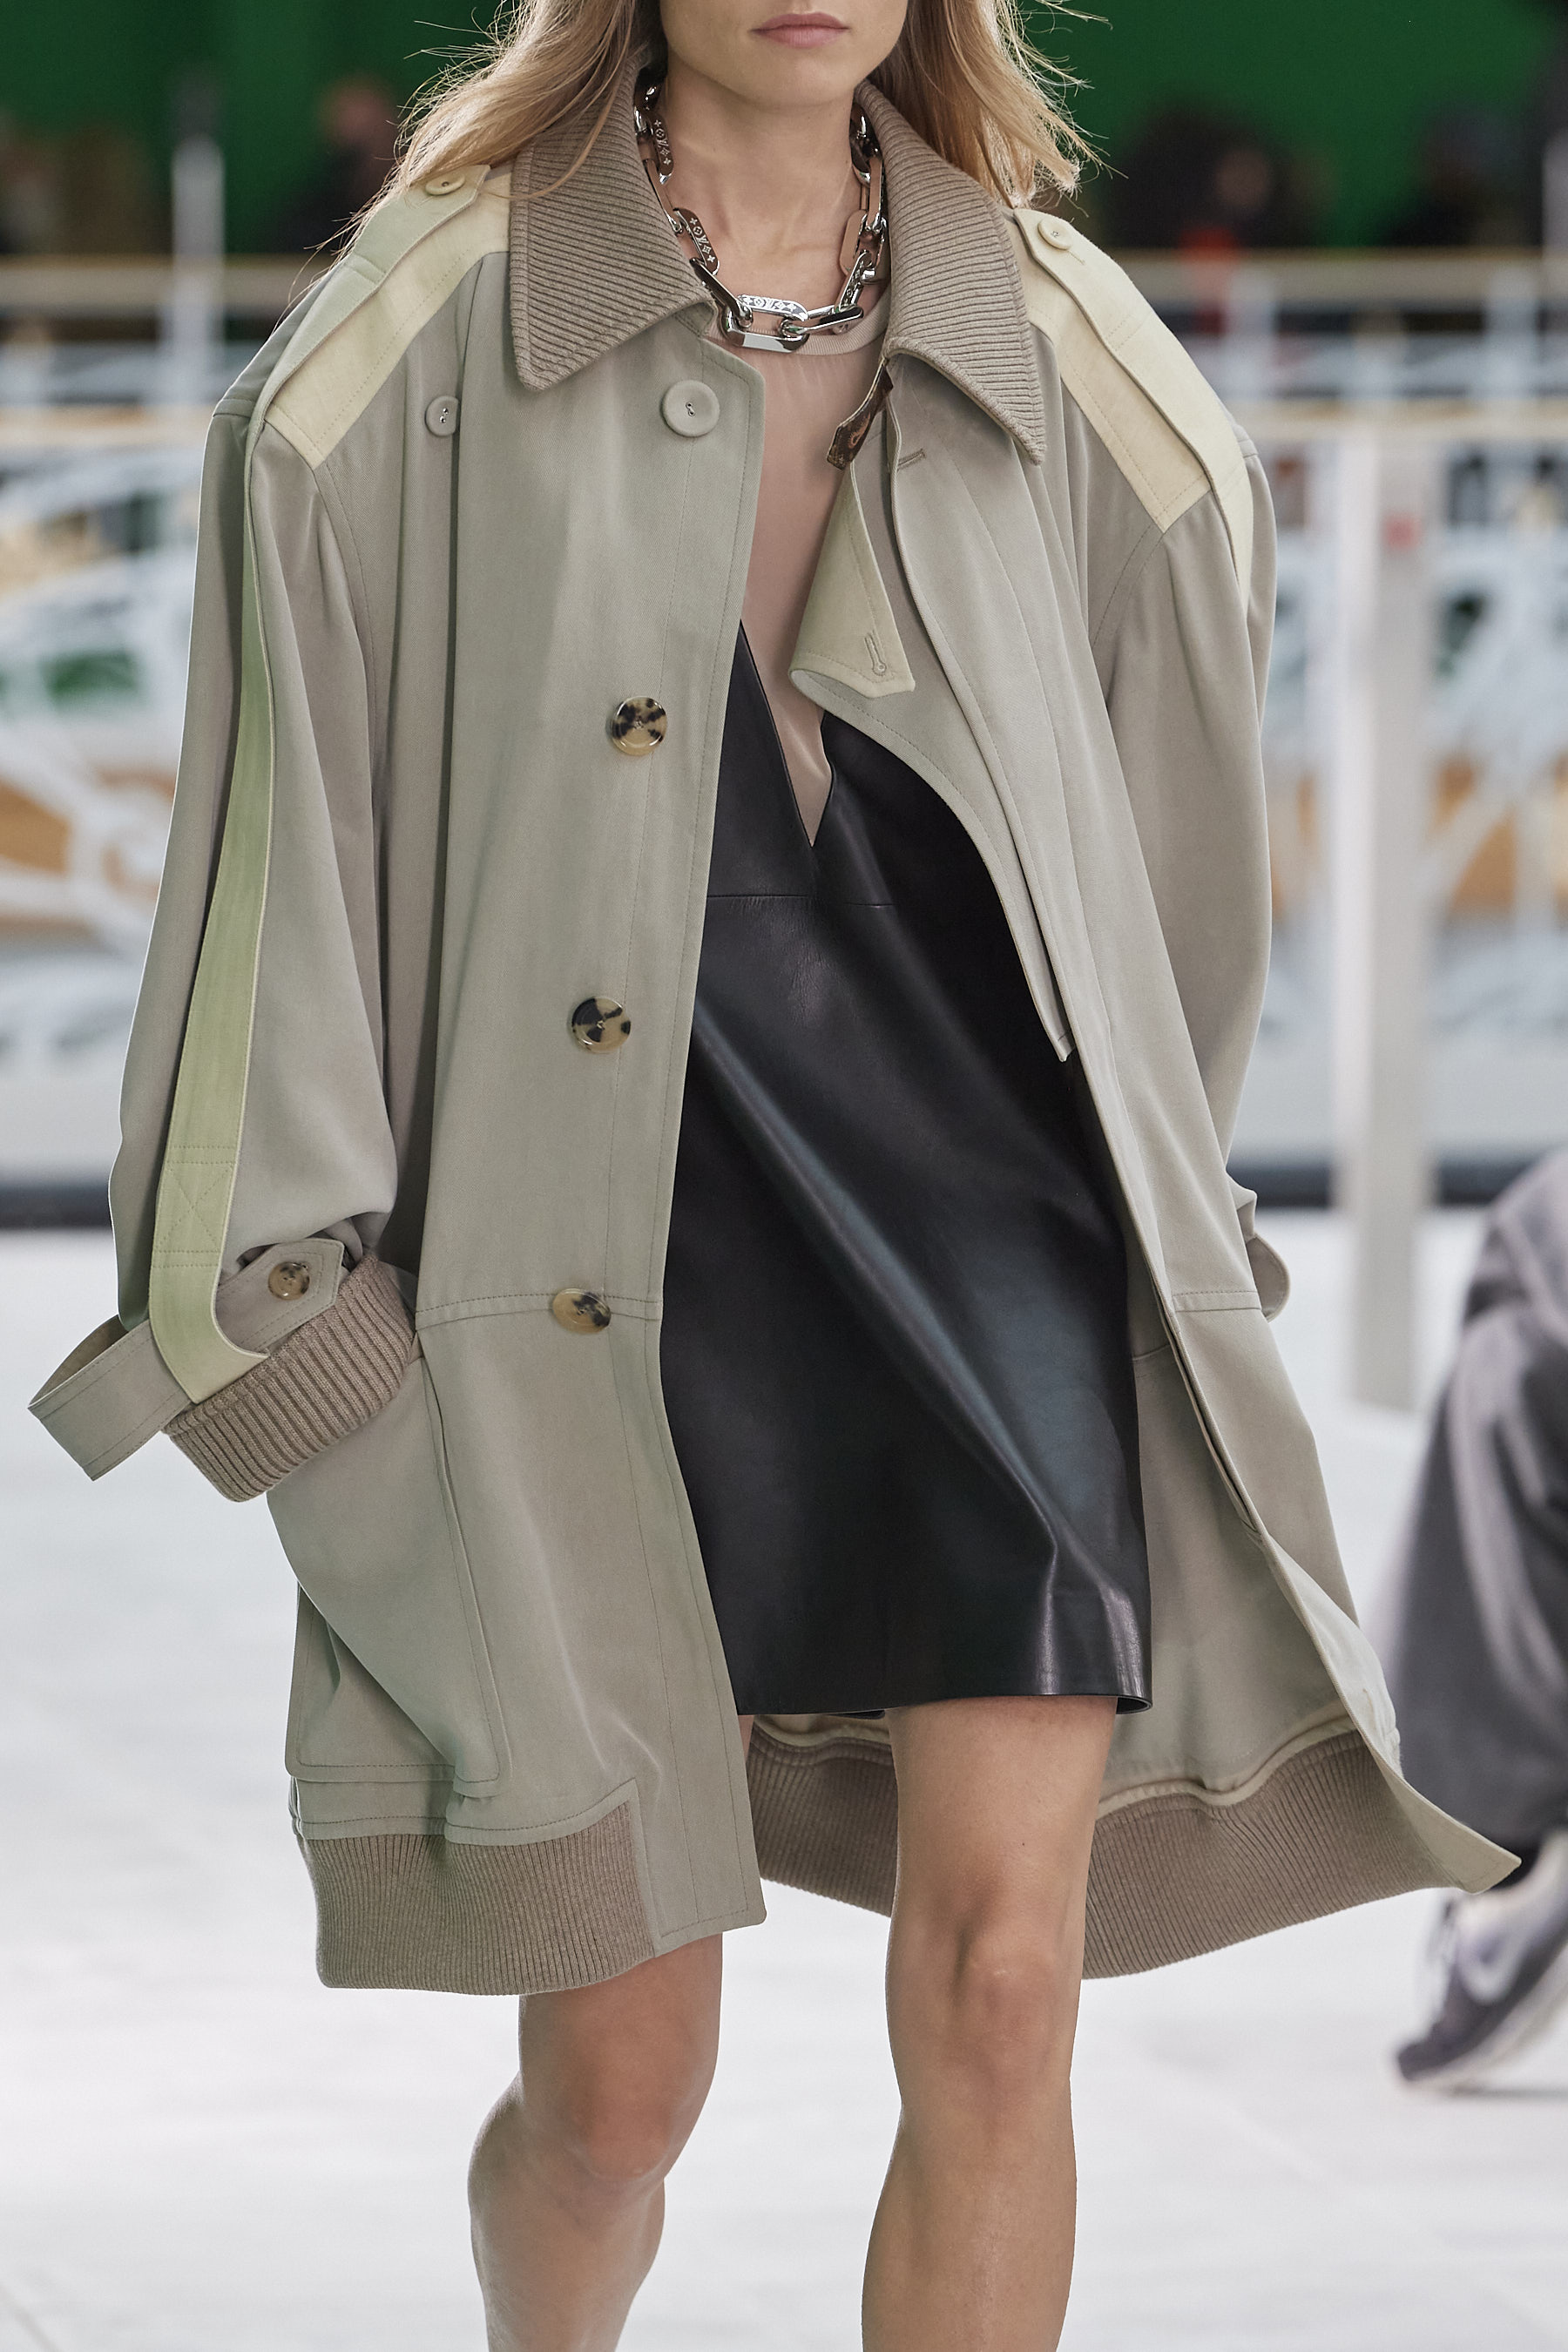 Louis Vuitton Spring 2021 Fashion Show Photos